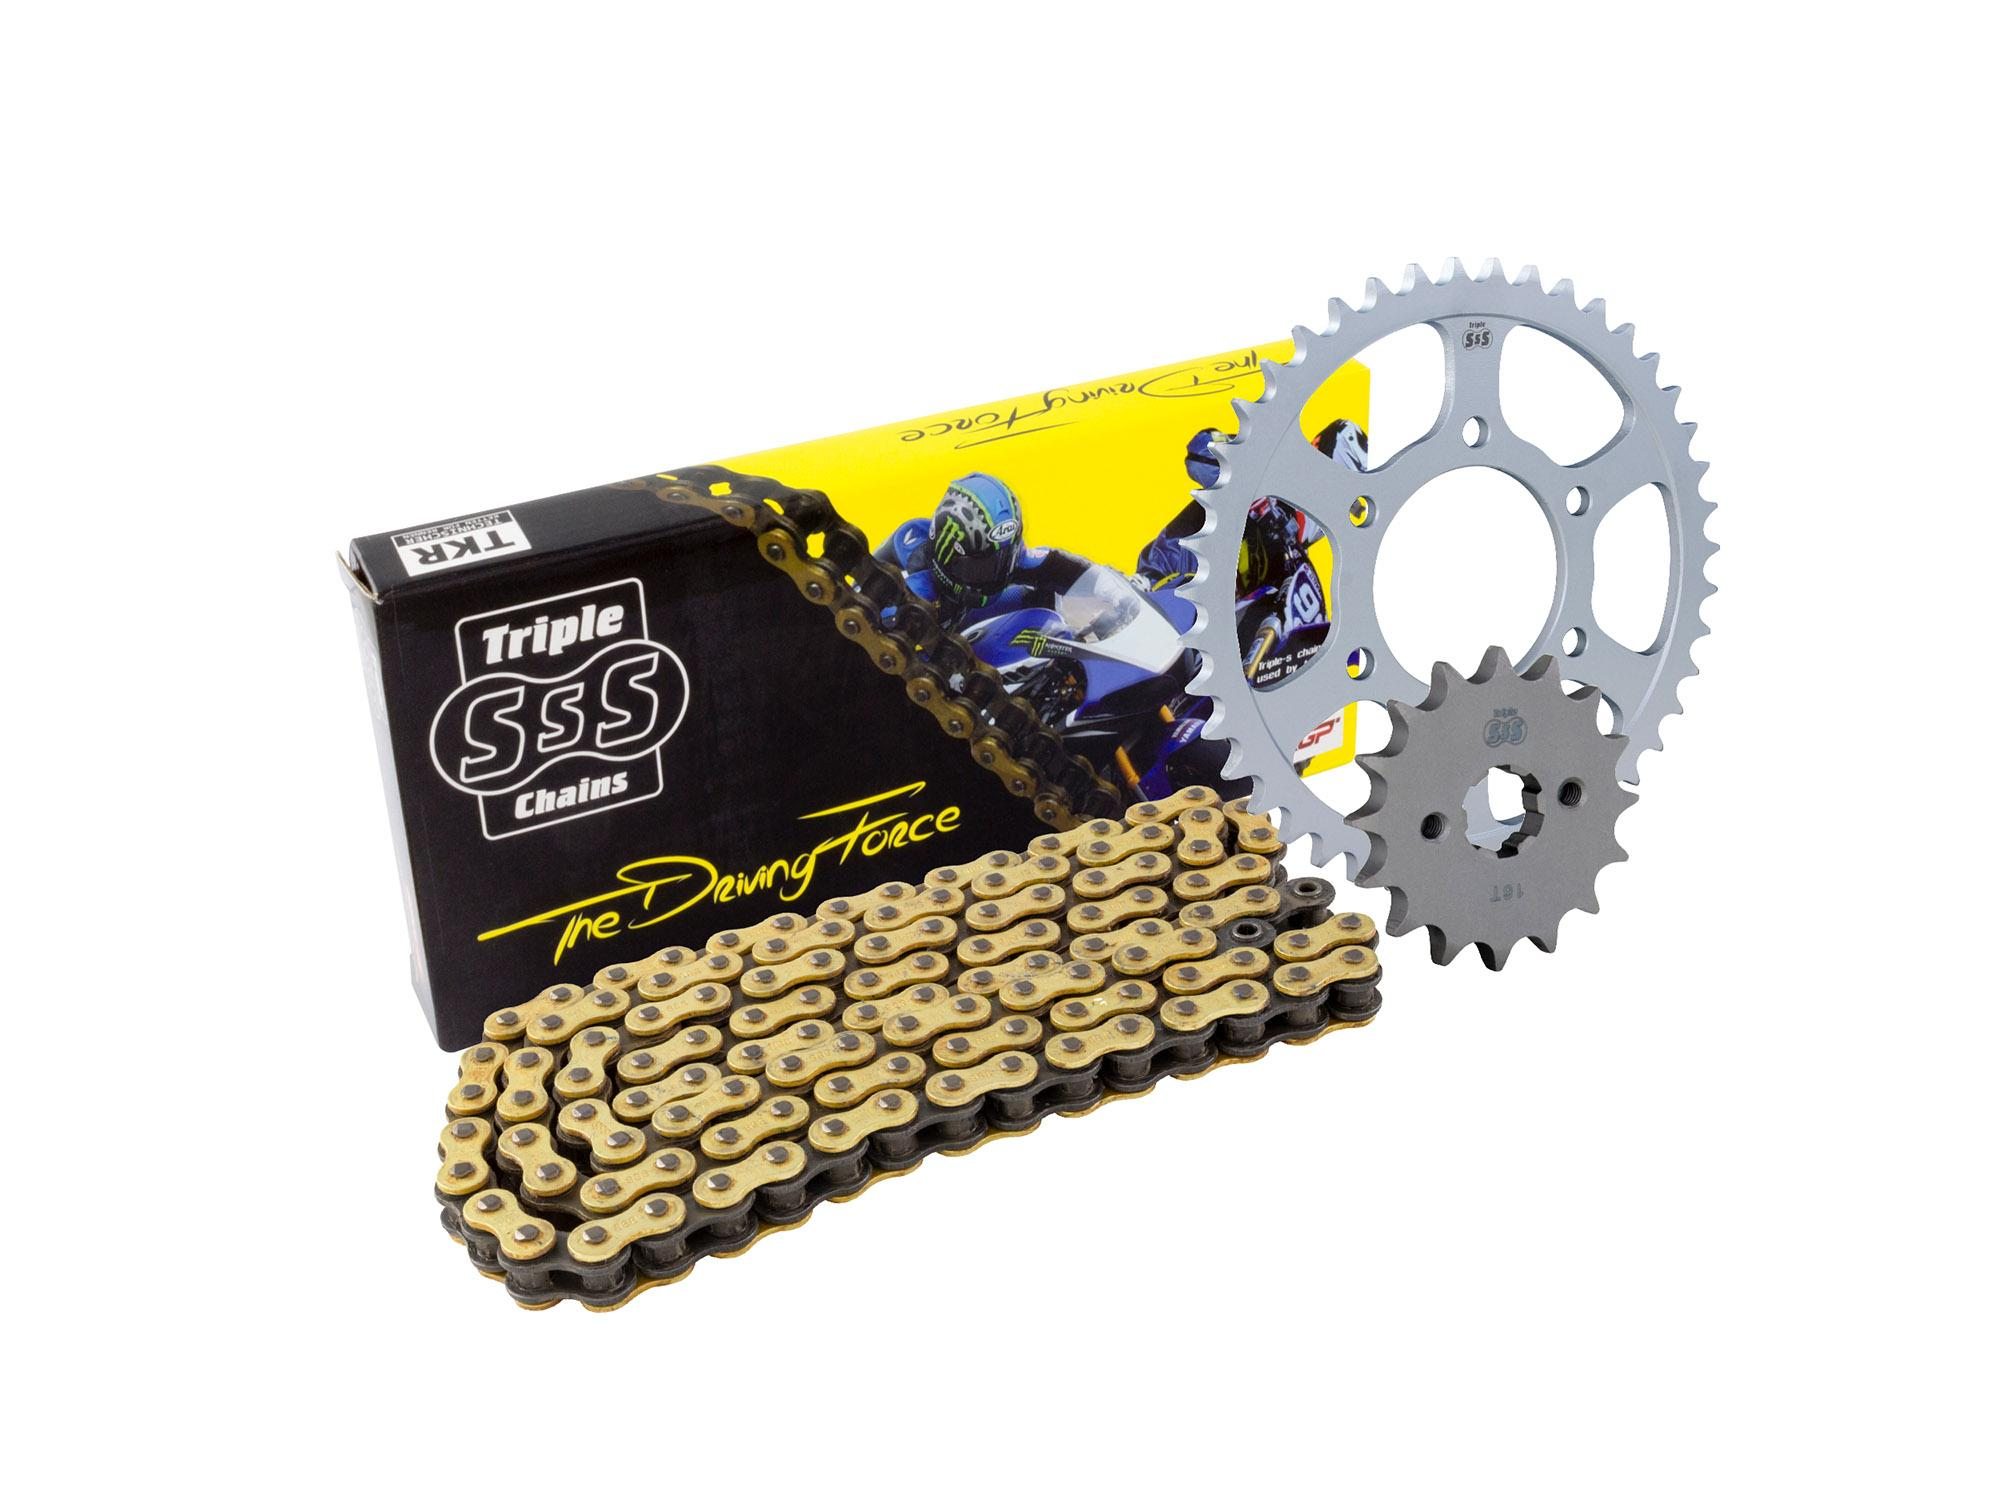 Yamaha XJR1300 02-03 Chain & Sprocket Kit: 17T Front, 39T Rear, HD O-Ring Gold Chain 530H 112 Link